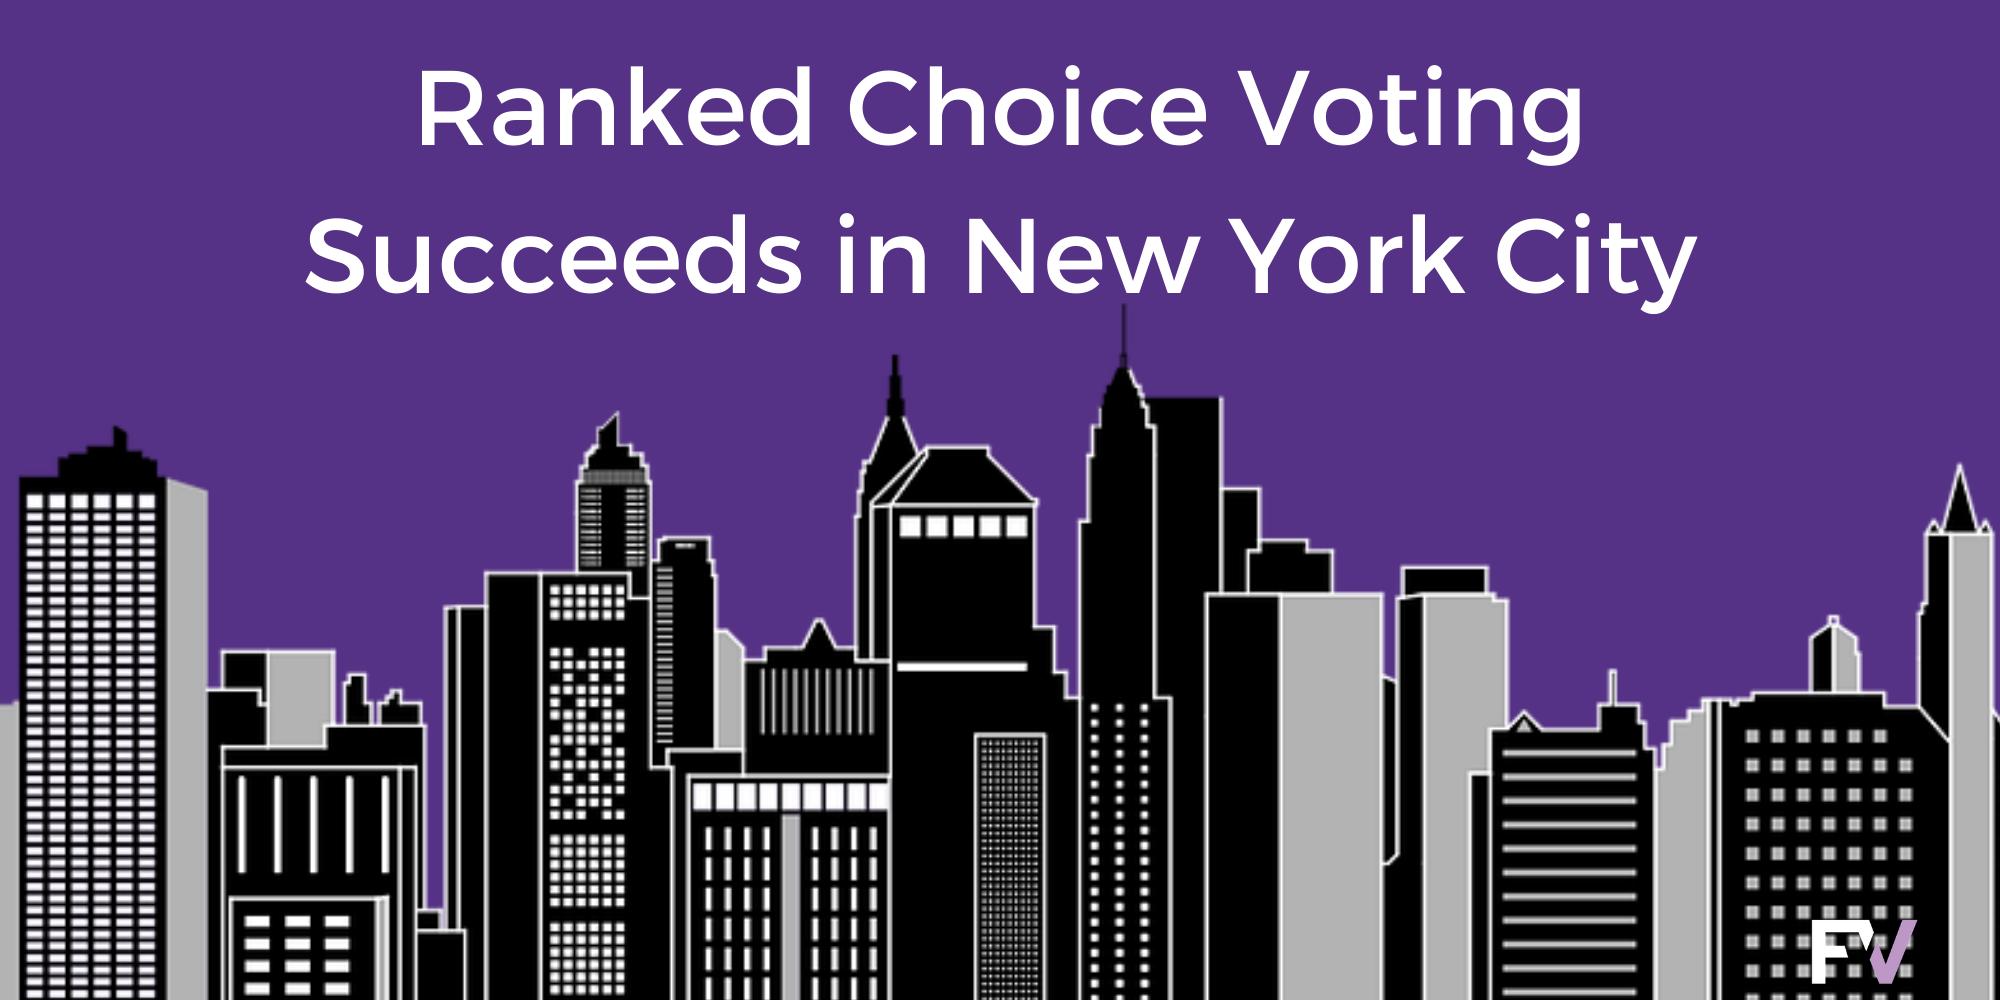 Success in biggest city-wide ranked choice voting election in American history